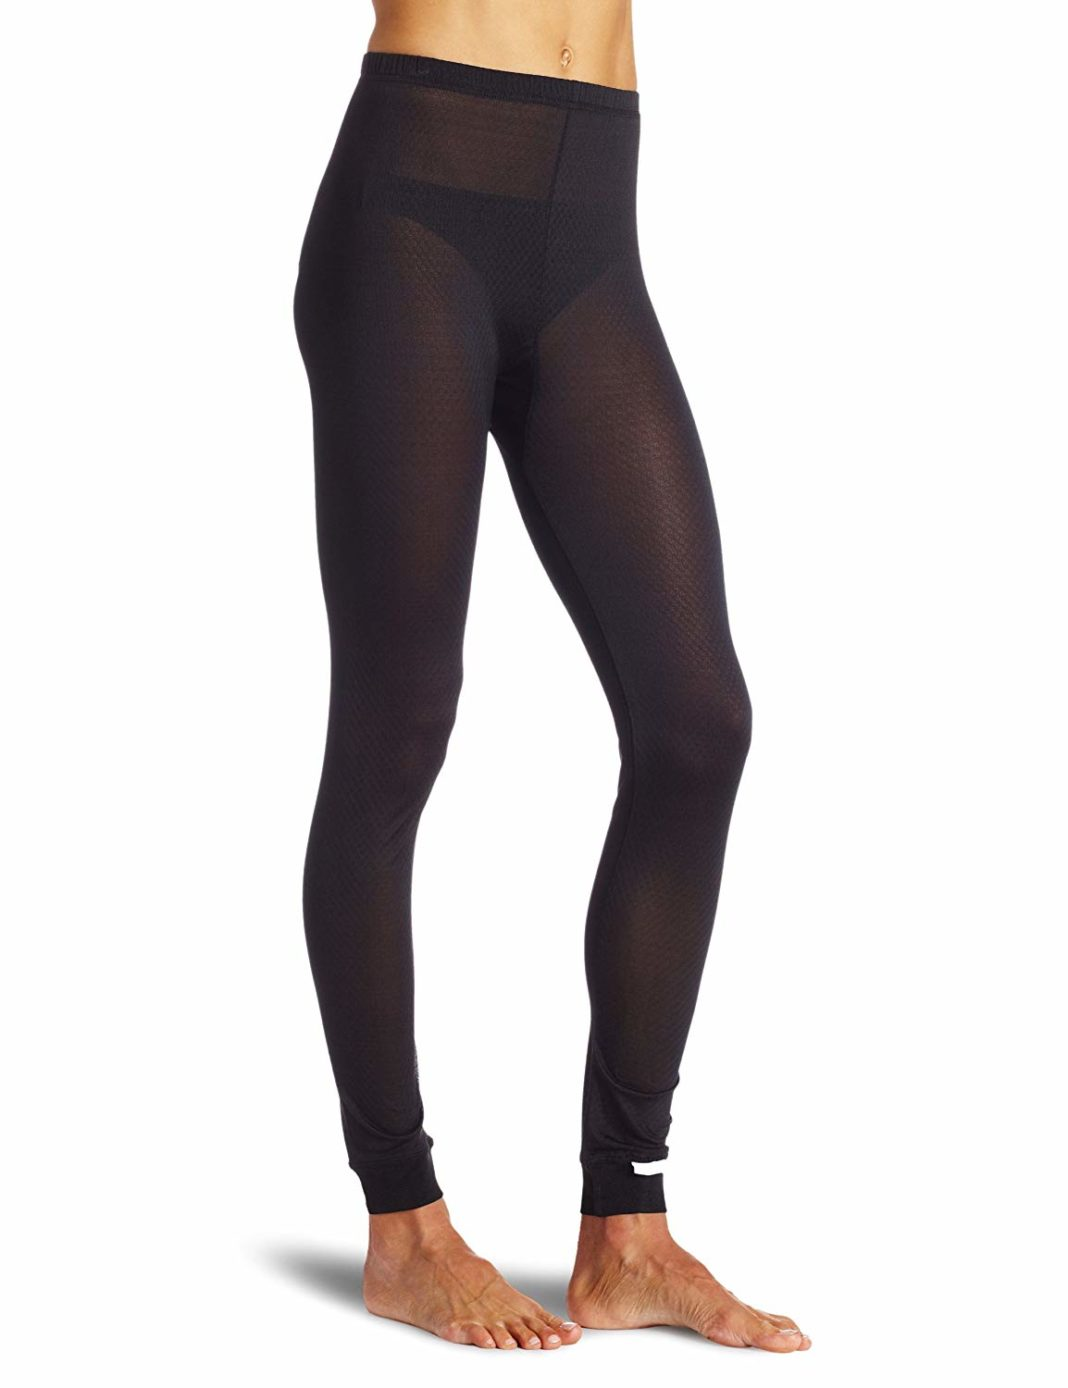 best thermal underwear, thermals for women, thermal underwear for women, best thermal underwear for extreme cold, best thermal wear for winter, silk thermals, best thermal underwear womens, best thermals for cold weather, thermal wear, best women's long underwear, thermal clothing, thermal leggings, best thermal wear brand, thermal wear for womens, best womens thermals, best silk long underwear, warmest womens long underwear, best thermals for winter, best long underwear, best thermals, thermal underwear, thermal pants women's, thin thermal clothing, best thermal clothes for winter, warmest thermals, silk thermal underwear, best thermal leggings for cold weather, womens long underwear, warm under clothes, warm underwear, thermal top